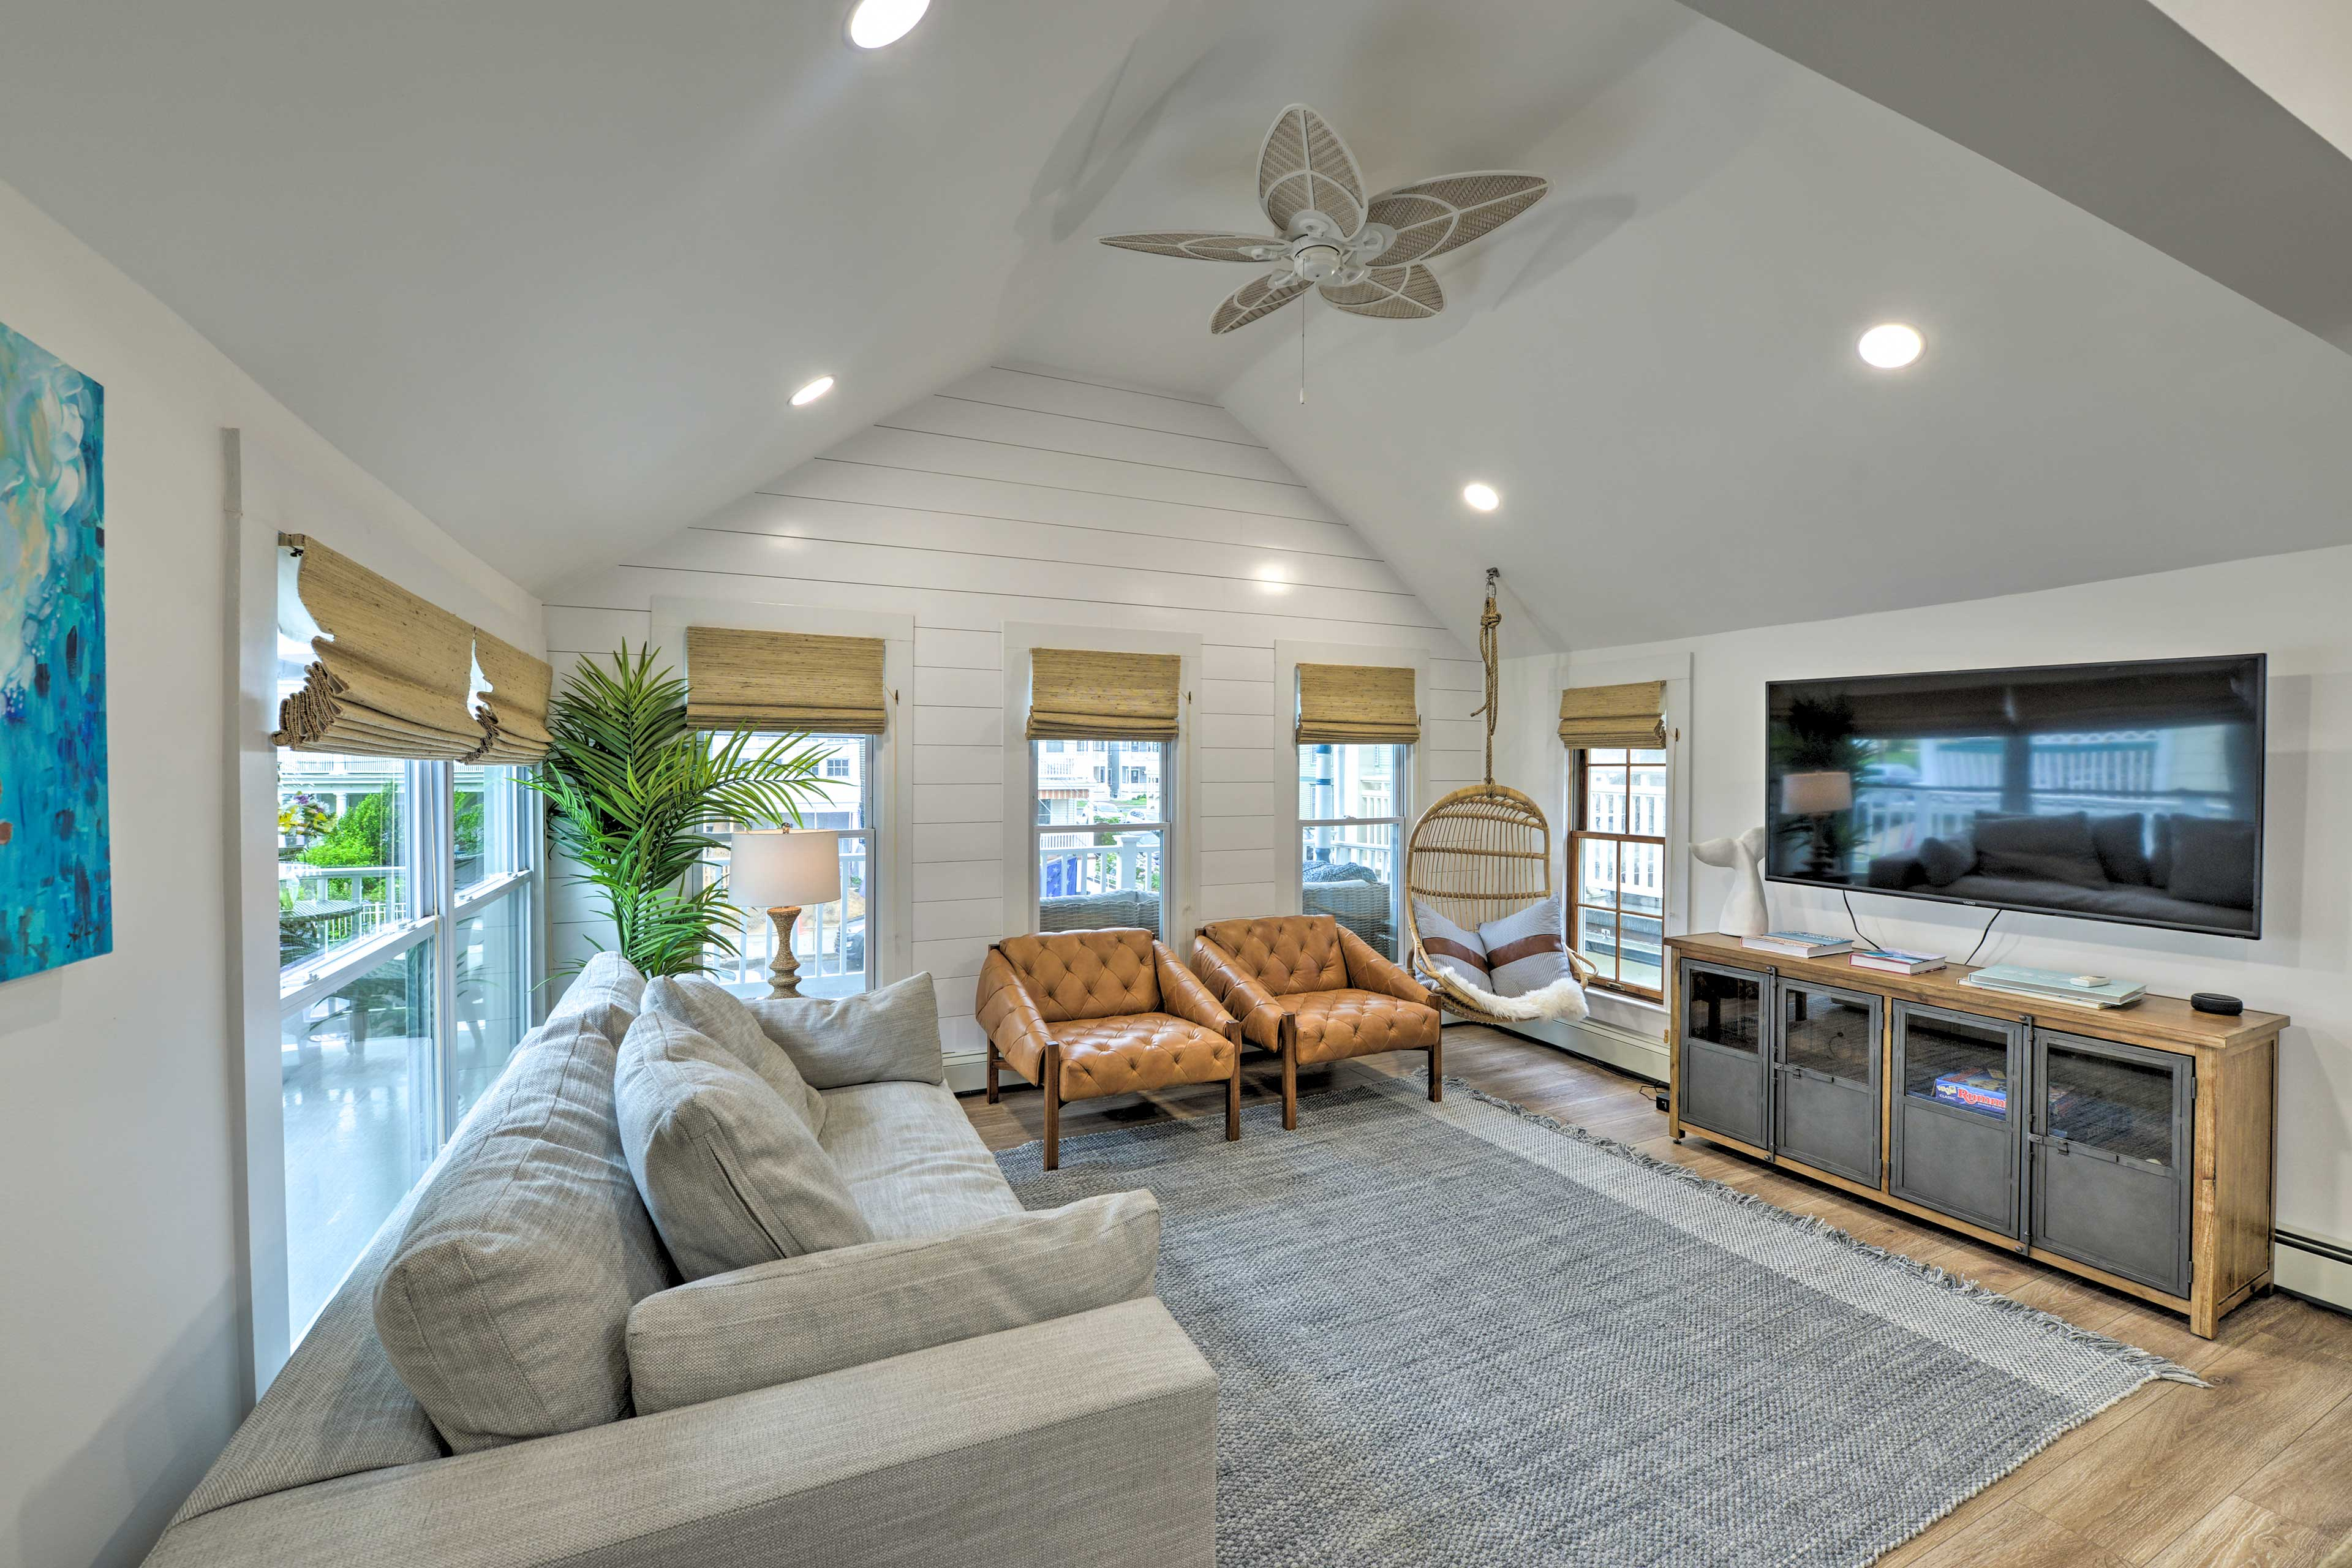 Ocean Grove Vacation Rental | 1BR | 1BA | 1,500 Sq Ft | Access Only by Stairs